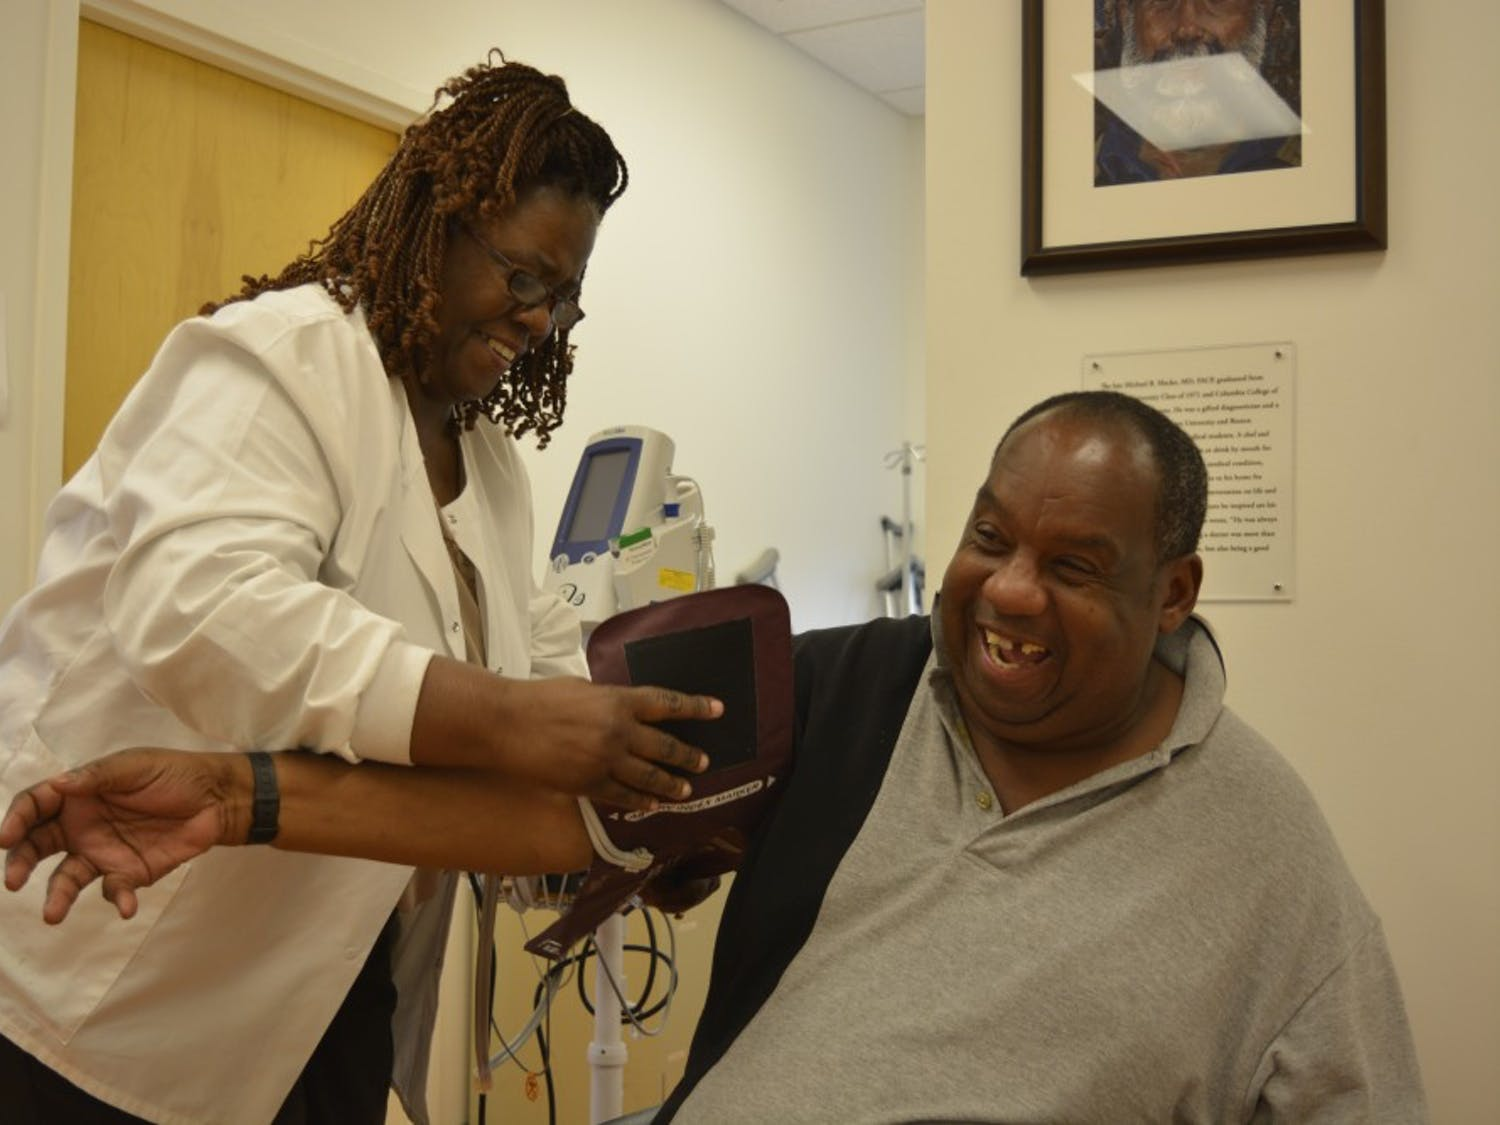 Eddie Caldwell has his blood pressure taken before an appointment at the Inter-Faith Council Community Health Center in Chapel Hill, NC, on Tuesday afternoon.